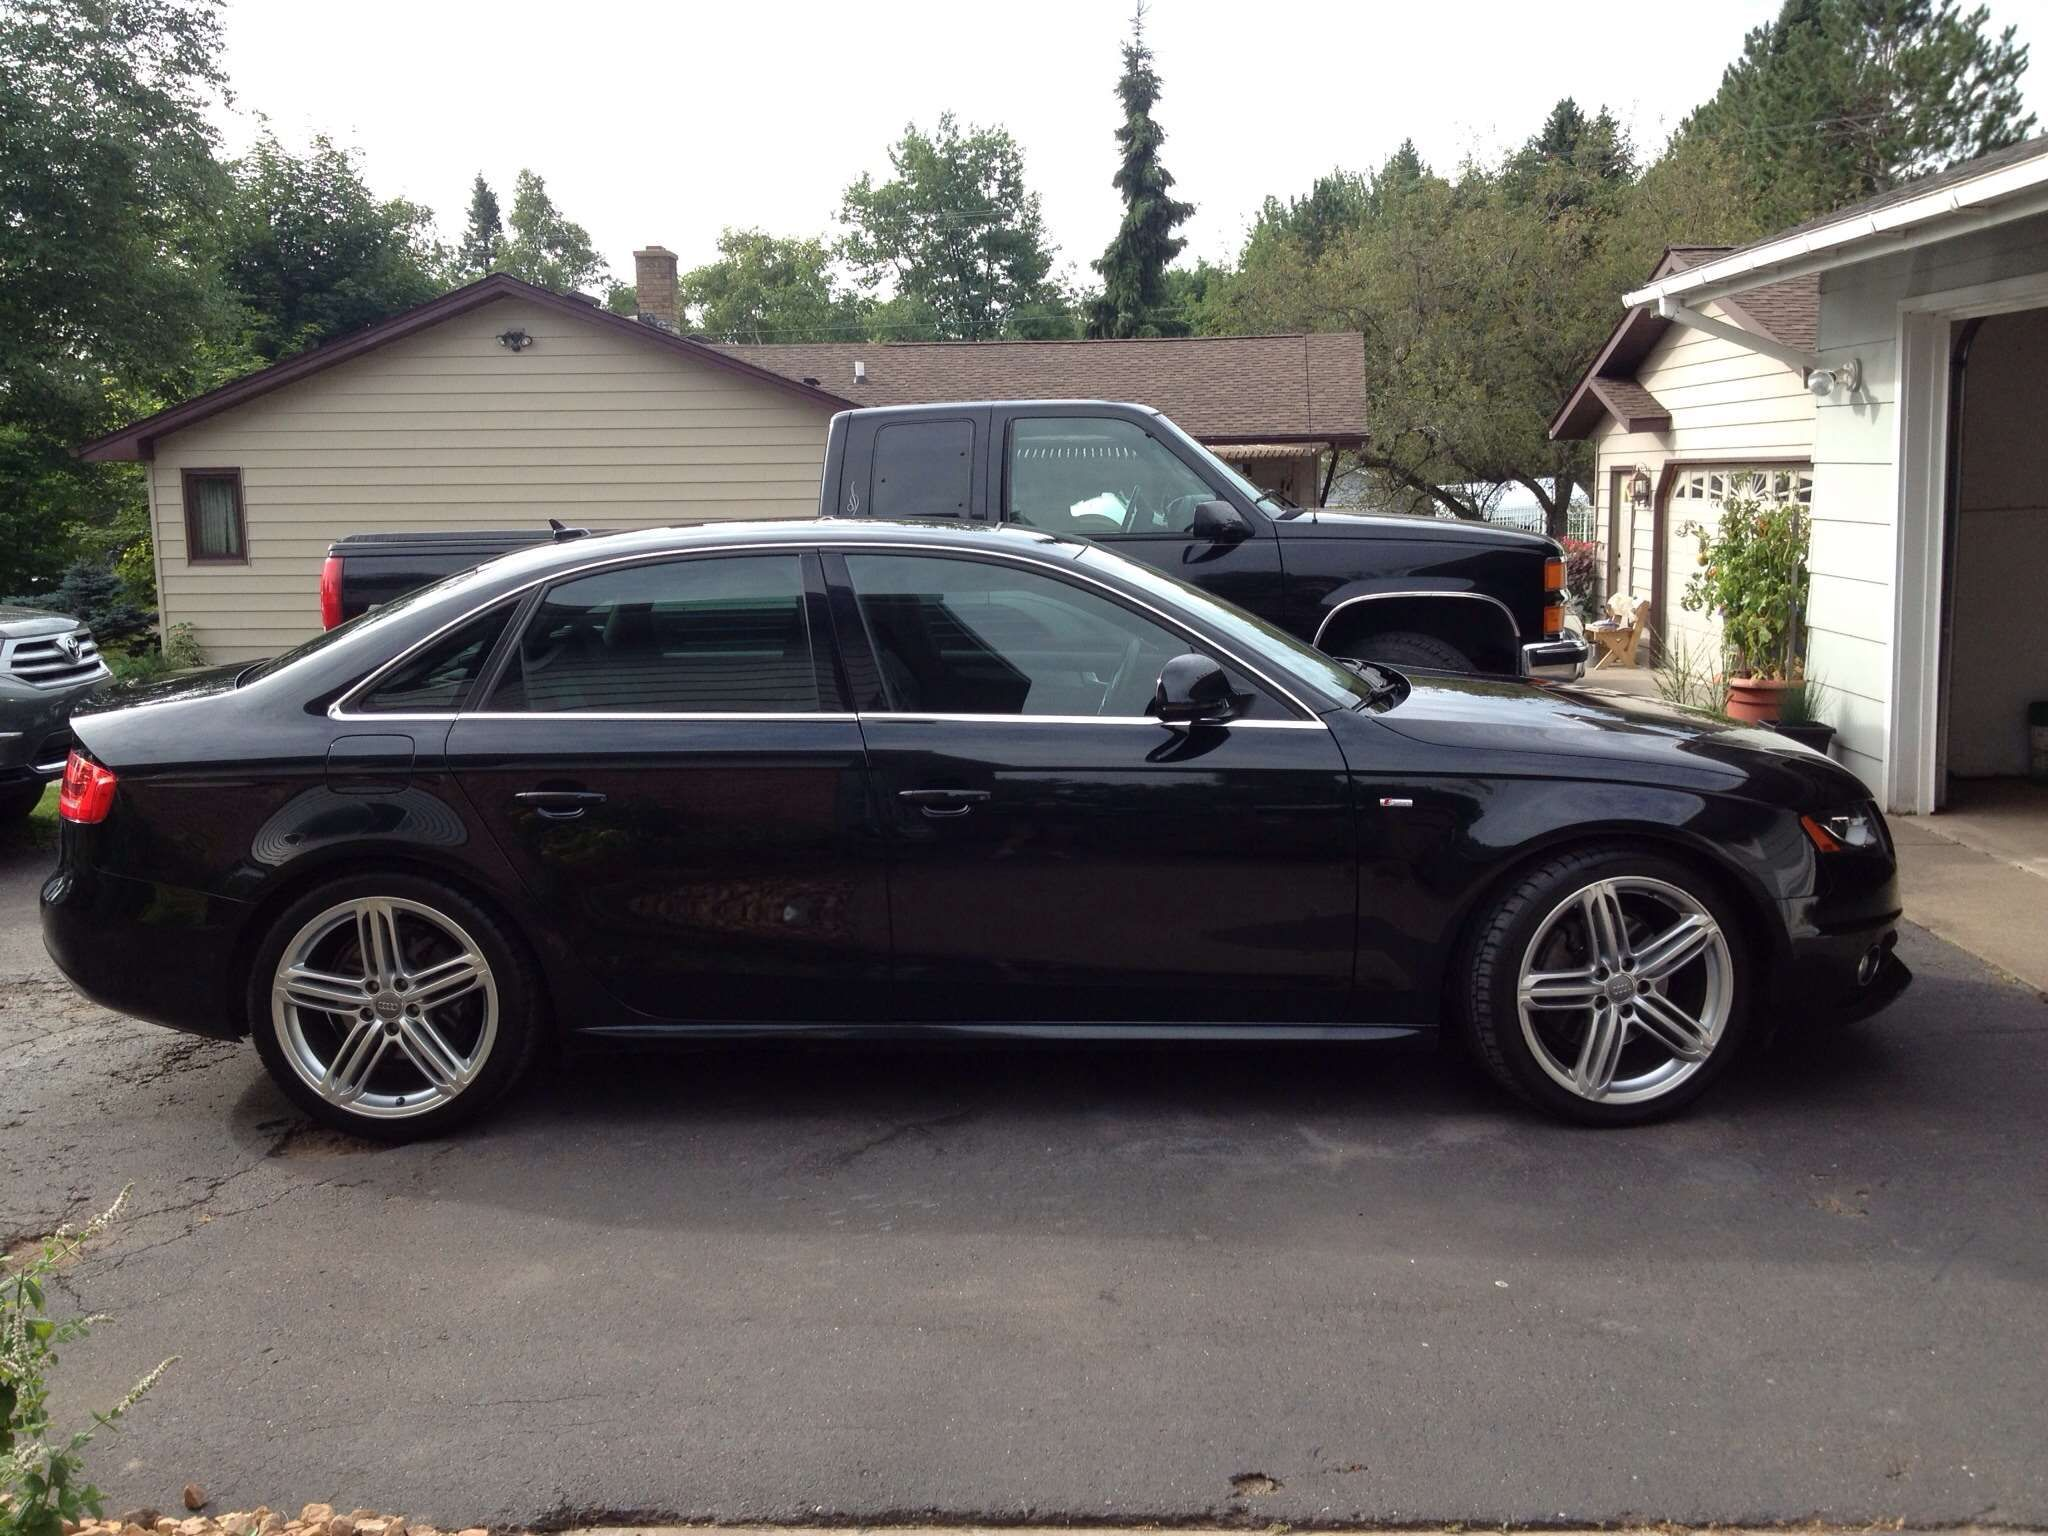 Make: Audi Model: A4 Year: 2009 Body Style: Sedan Exterior Color ...